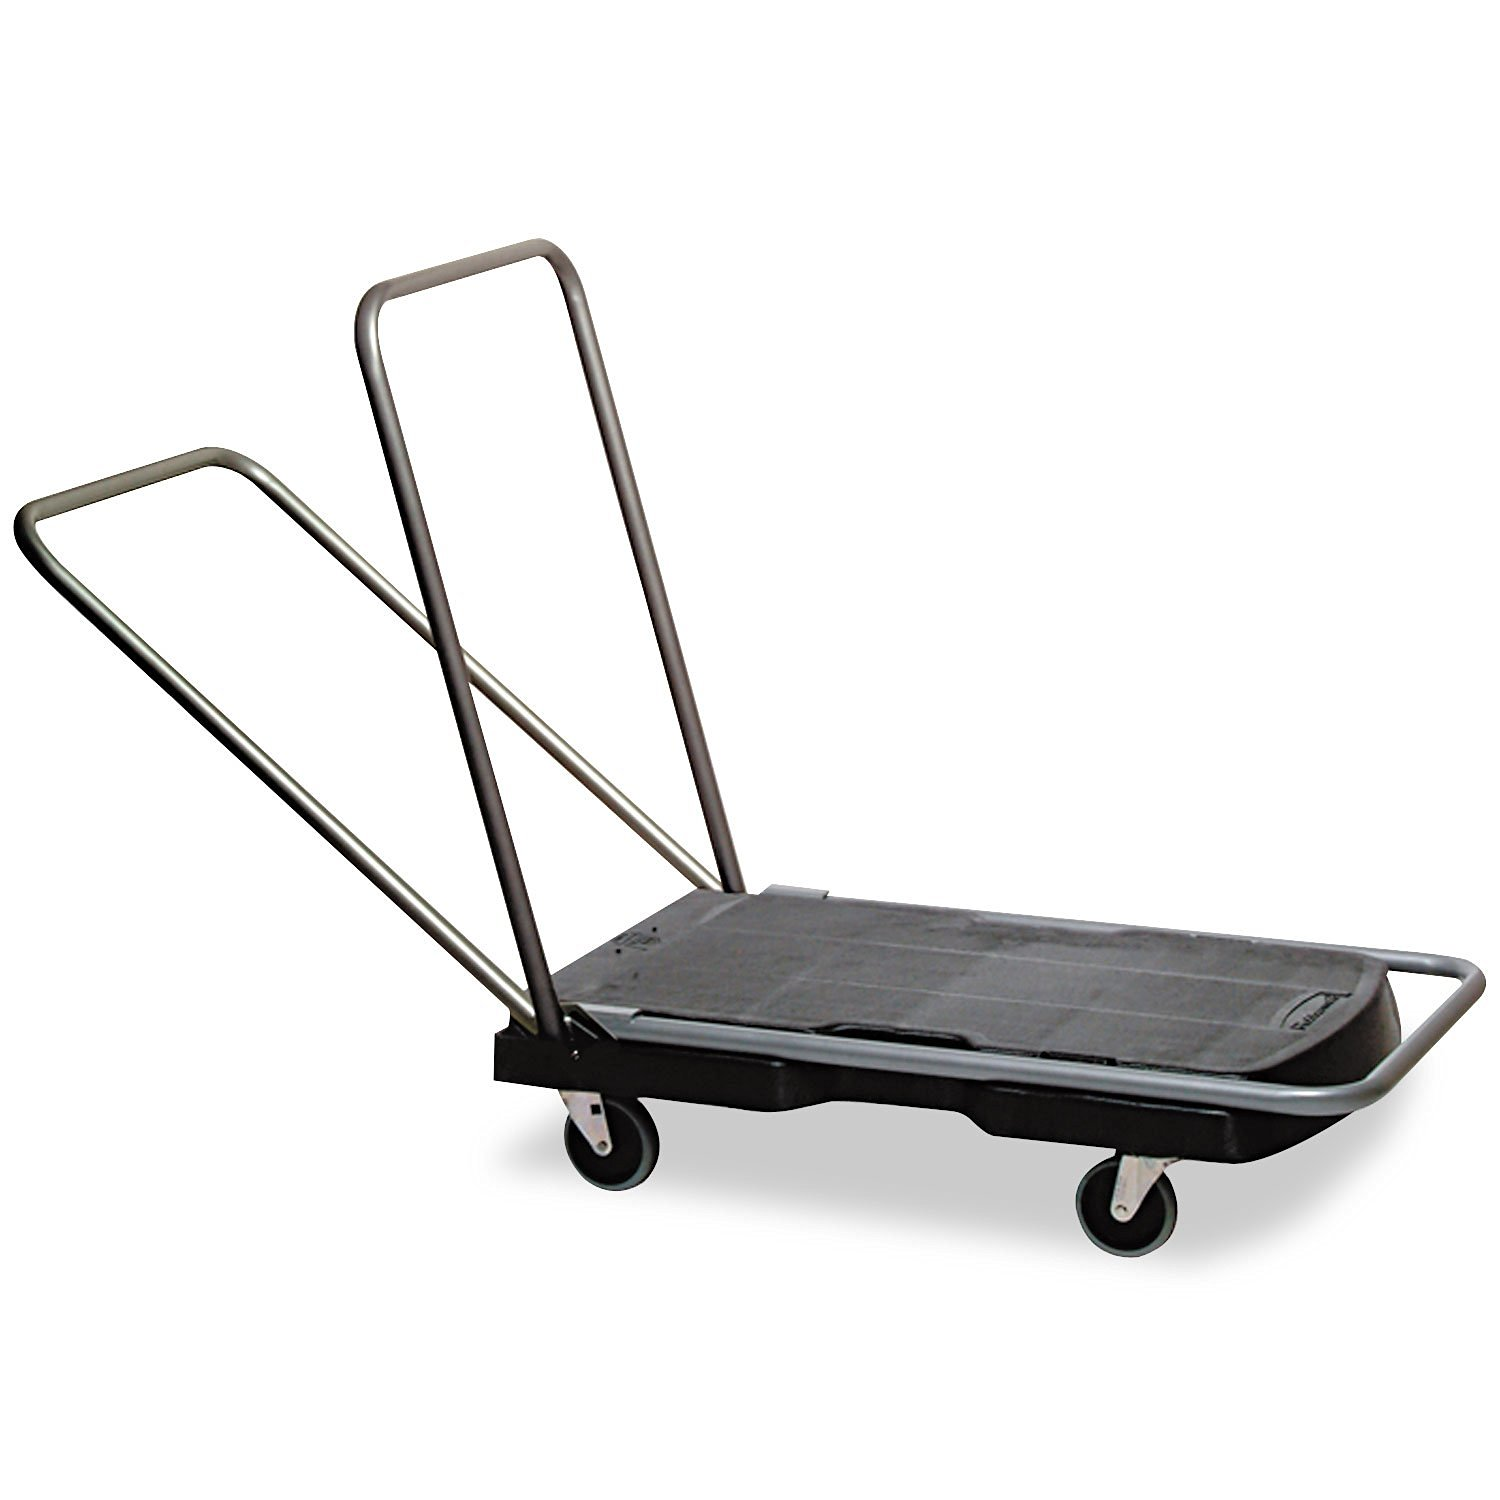 "Rubbermaid® Commercial Utility-Duty Home/Office Cart, 250lb Cap, 20-1/2"" x 32-1/2"" Platform, Black"